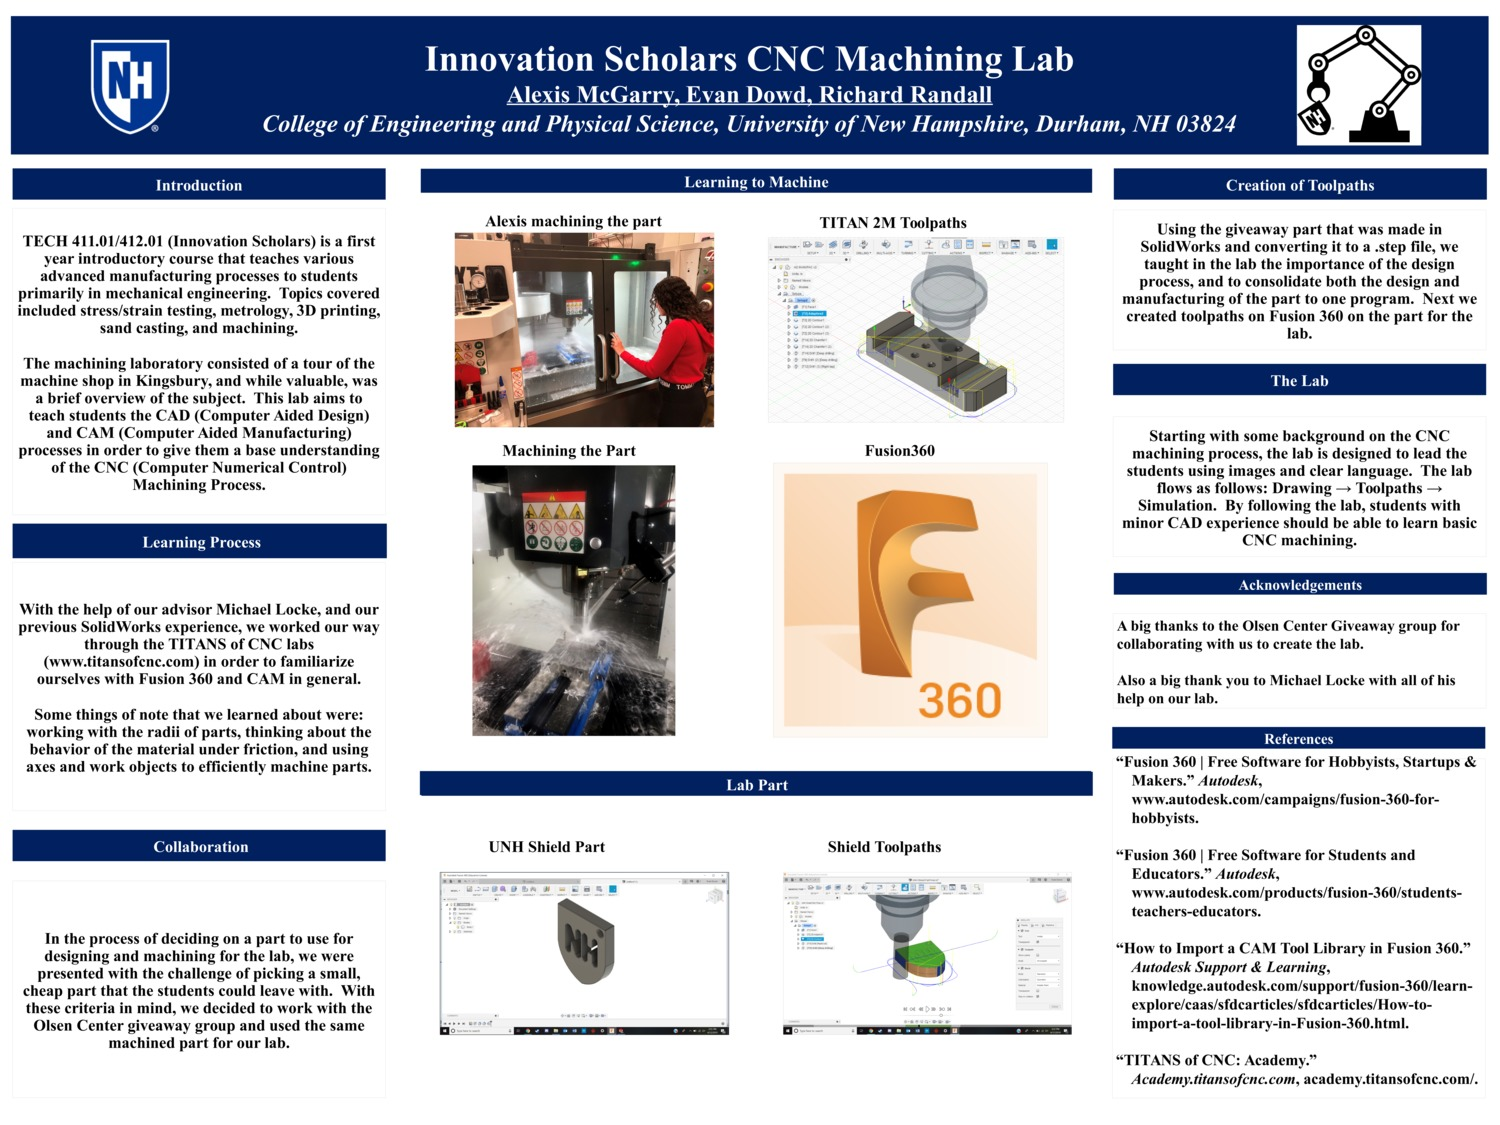 Innovation Scholars Cnc Lab by rdr1009